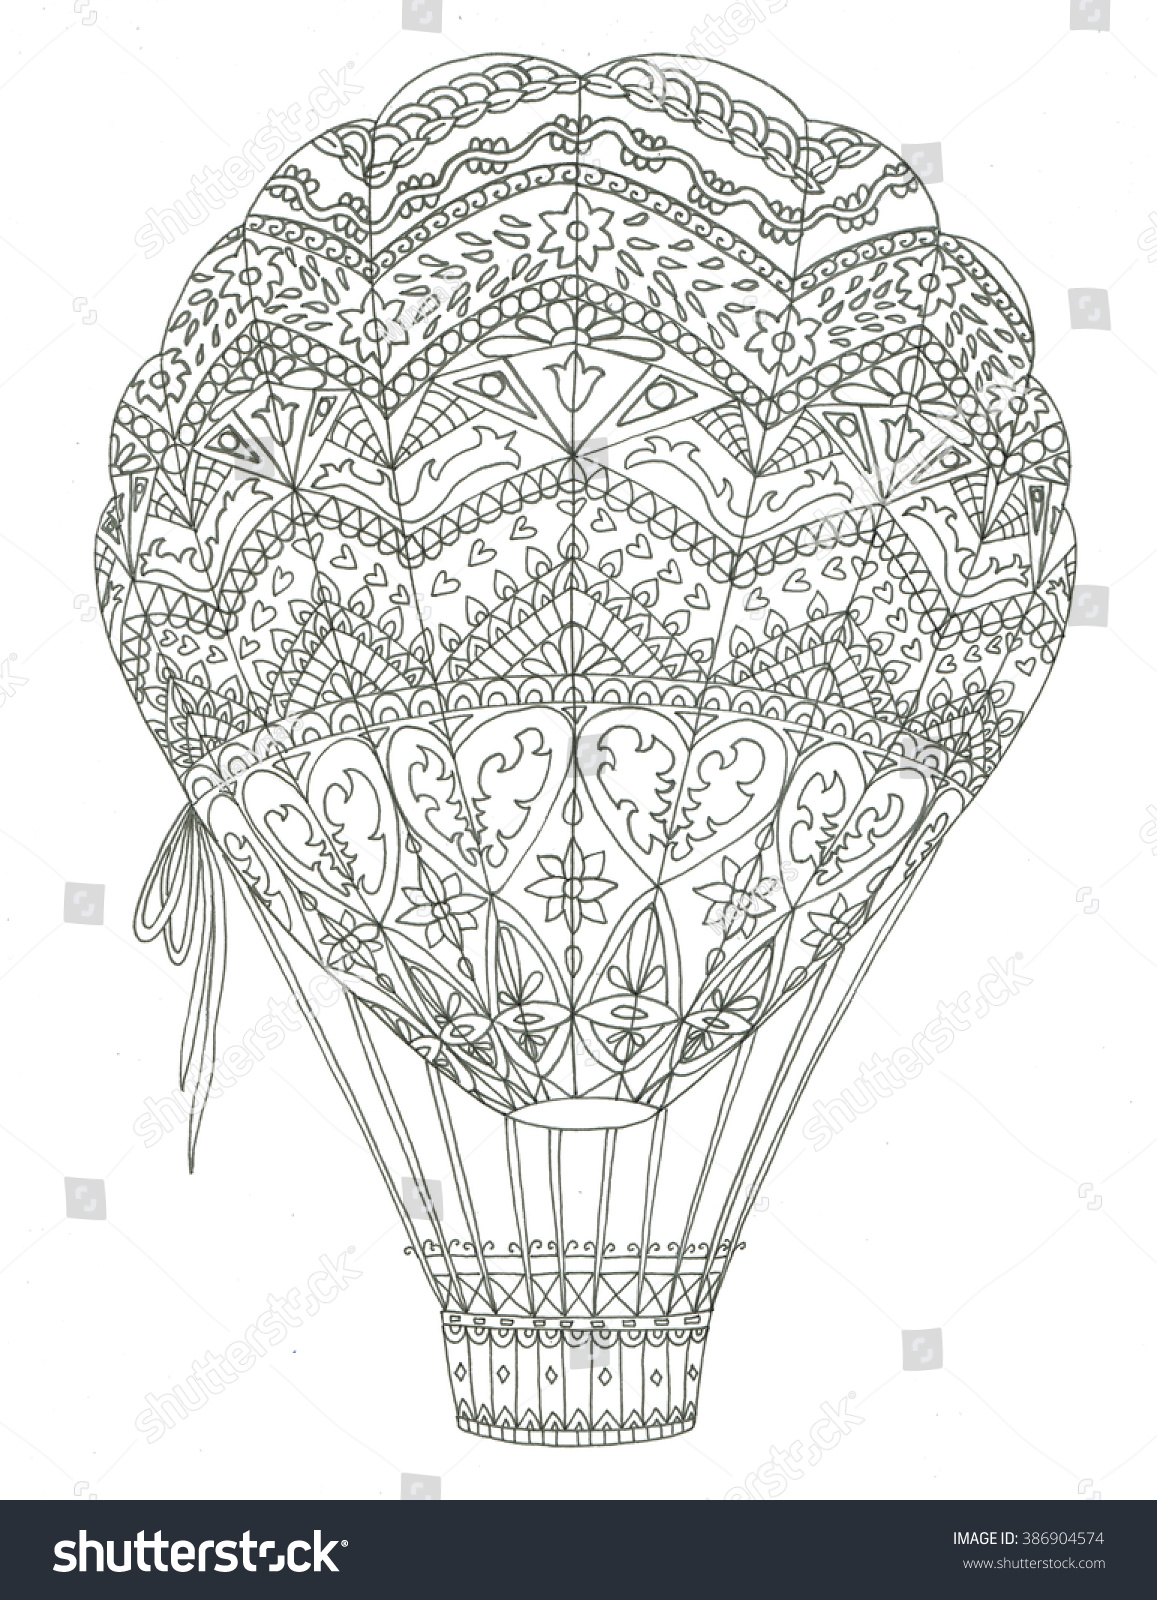 Air Balloon Coloring Page Stock Illustration 386904574 - Shutterstock